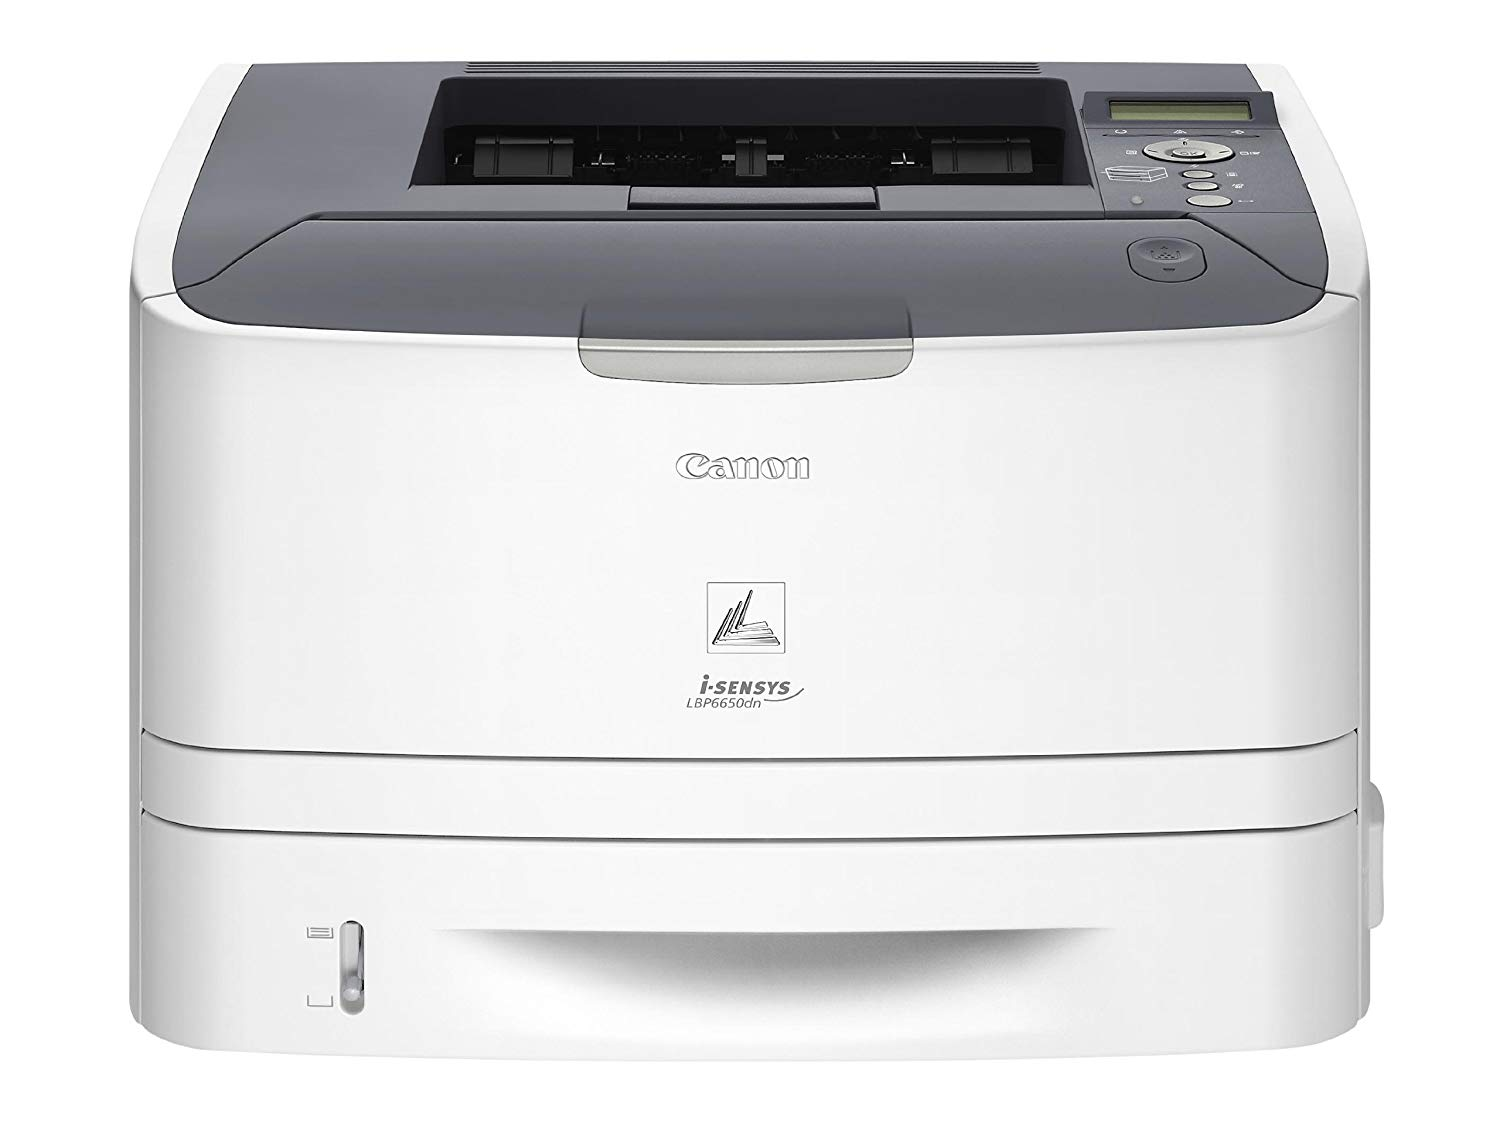 CANON IMAGECLASS D550 PRINTER UFR II WINDOWS 7 X64 DRIVER DOWNLOAD